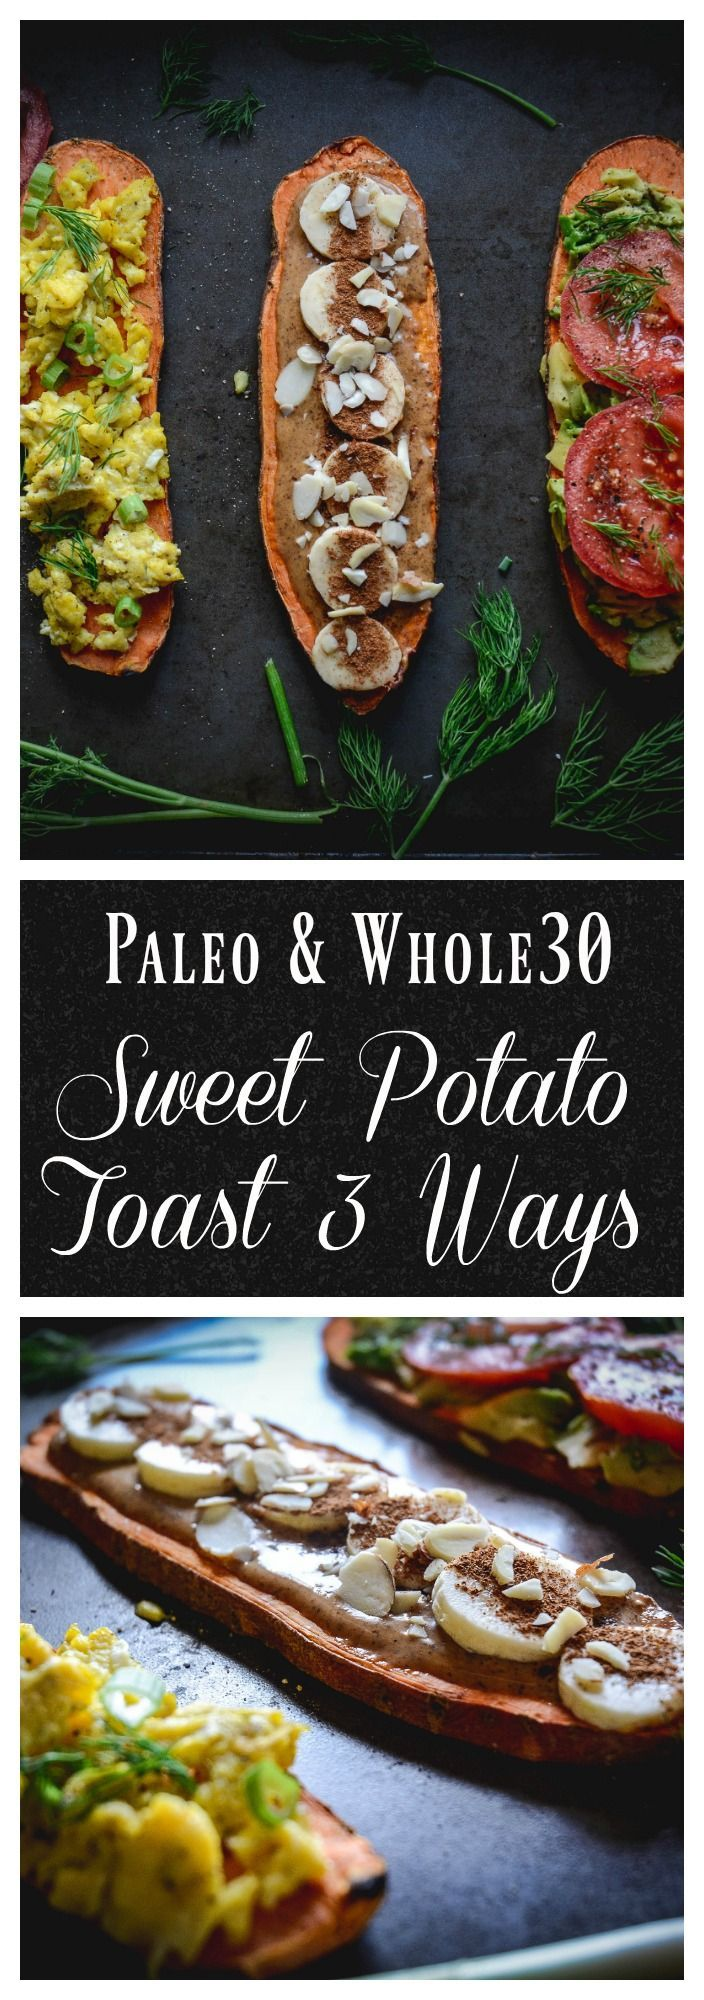 Sweet potato toast is a versatile and delicious alternative to toast. You can make them sweet or savory. Check out three ways to make sweet potato toast delicious. A paleo and whole30 breakfast. #sweetpotatotoast, #paleo, #glutenfree, #whole30, #paleobreakfast, #paleobrunch, #whole30breakfast,